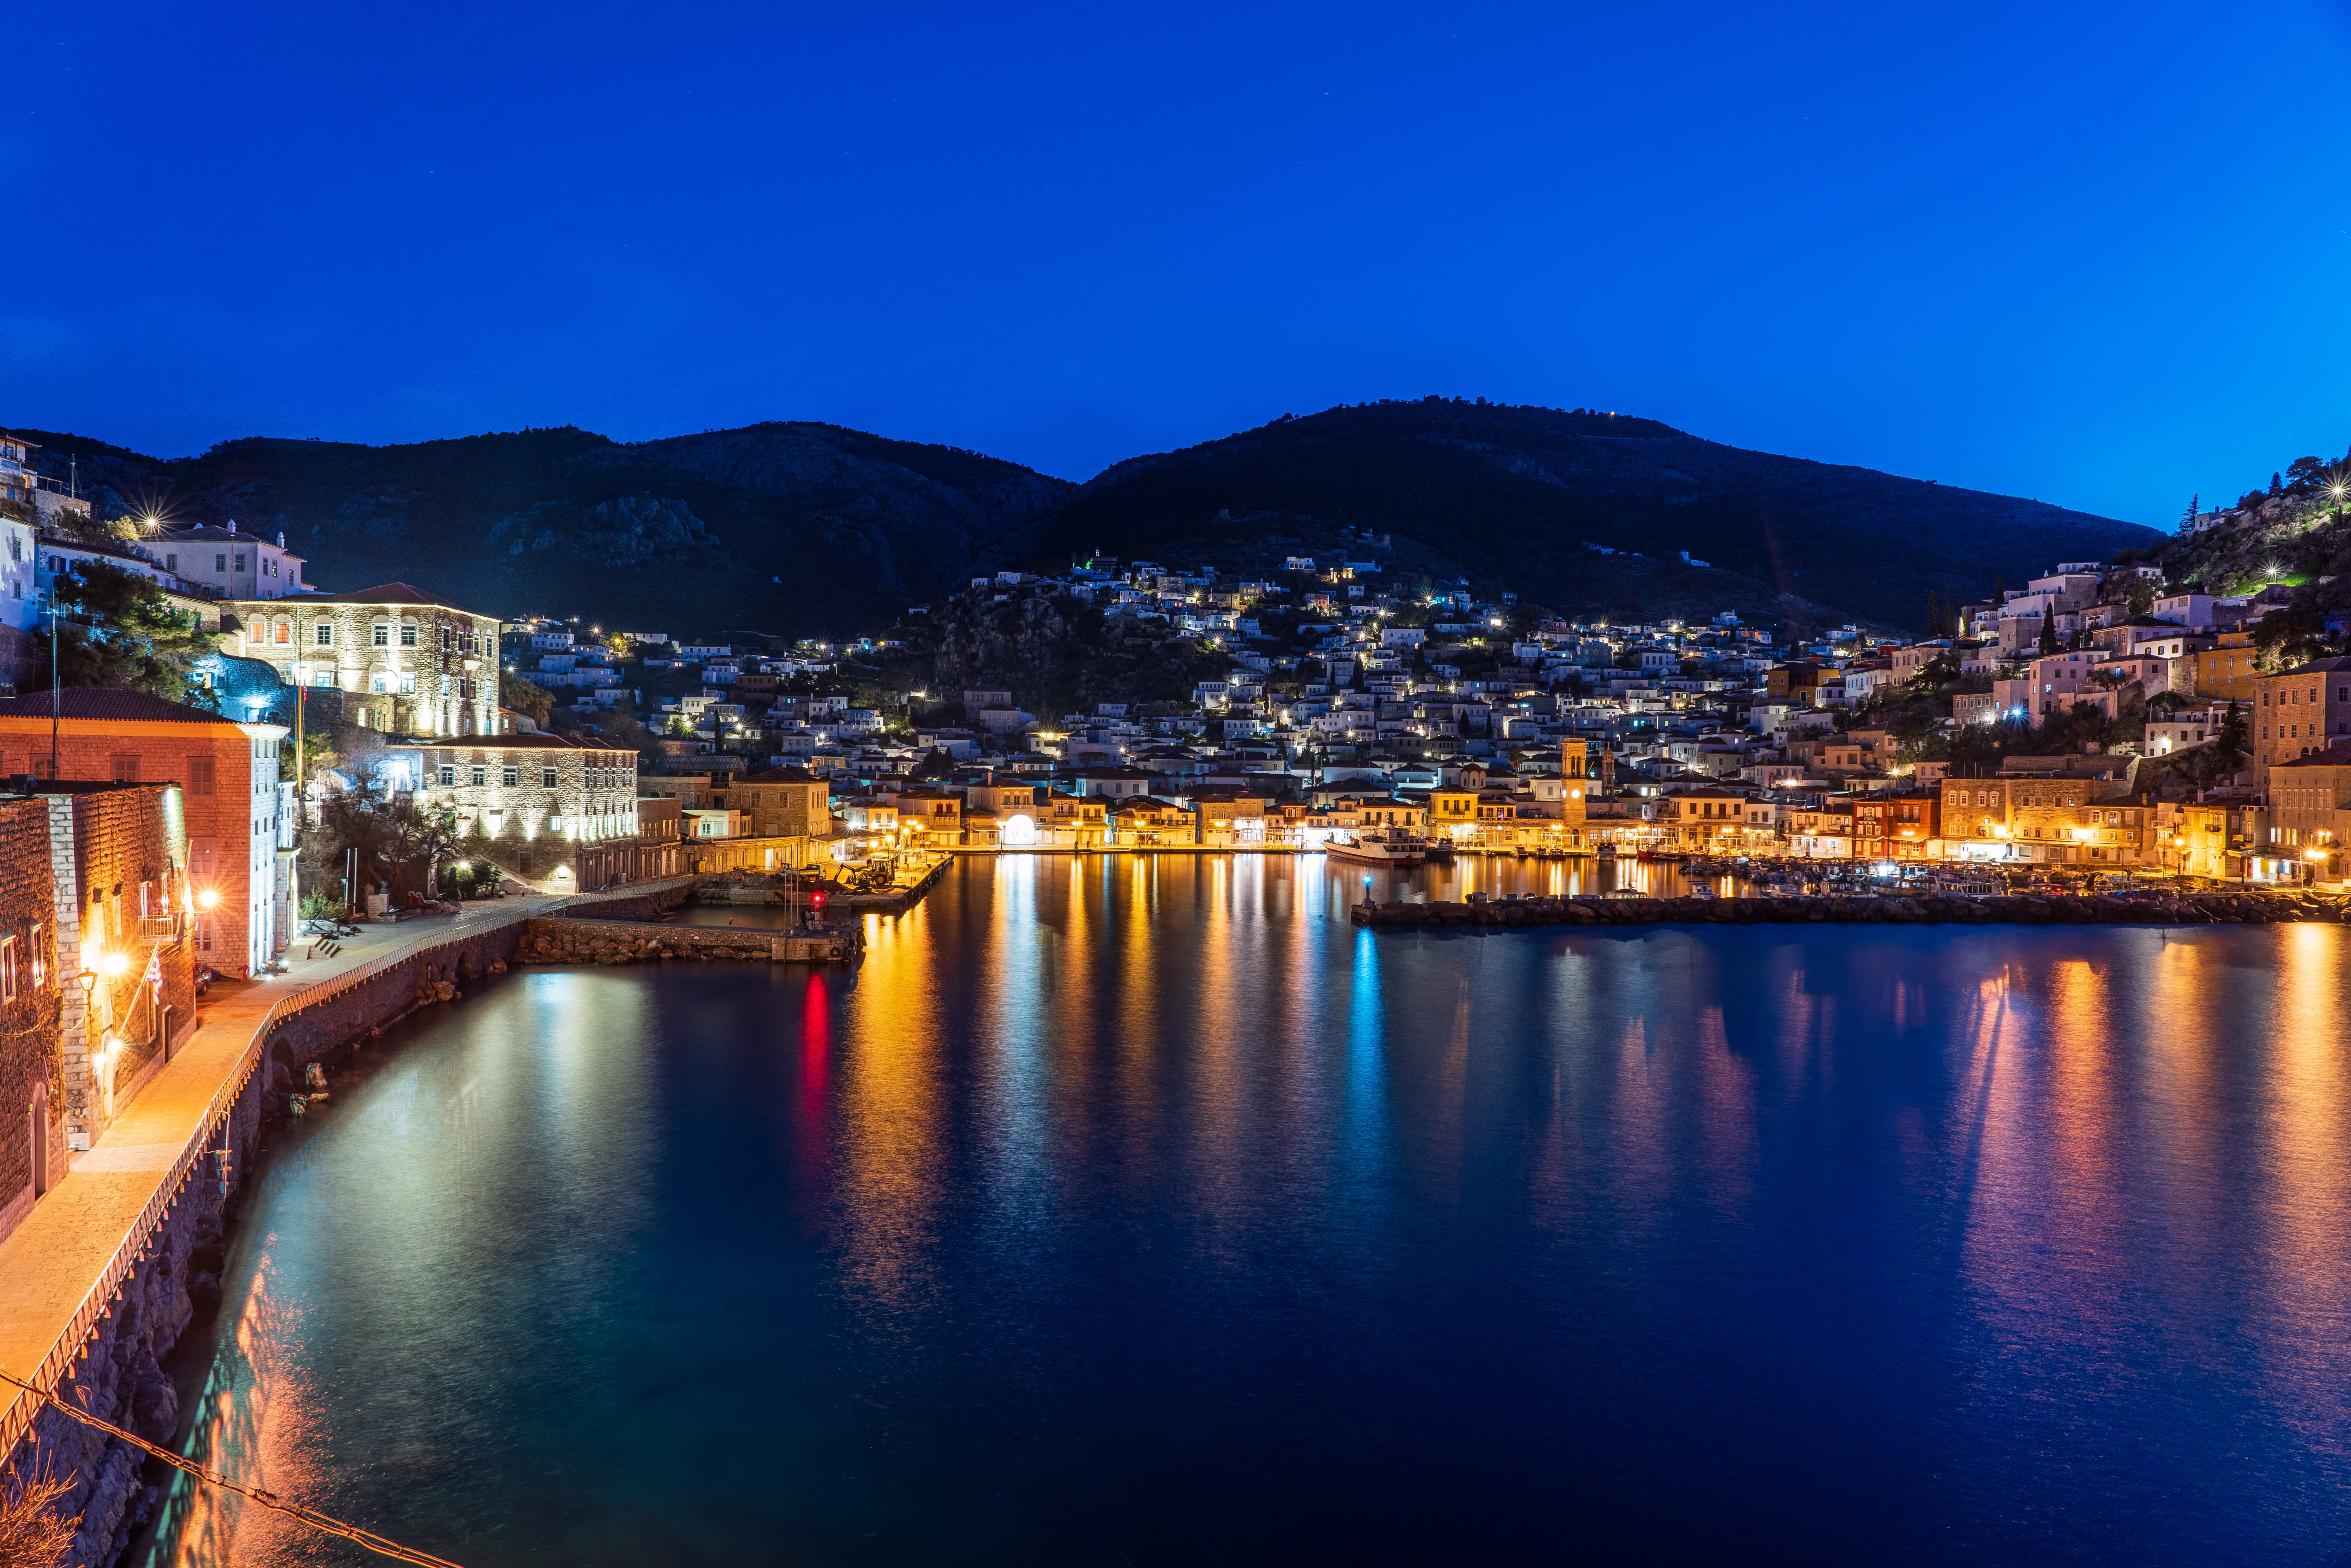 Greece - Blue hour at Hydra| f/8 30sec ISO-100 24mm  | ILCE-7RM3